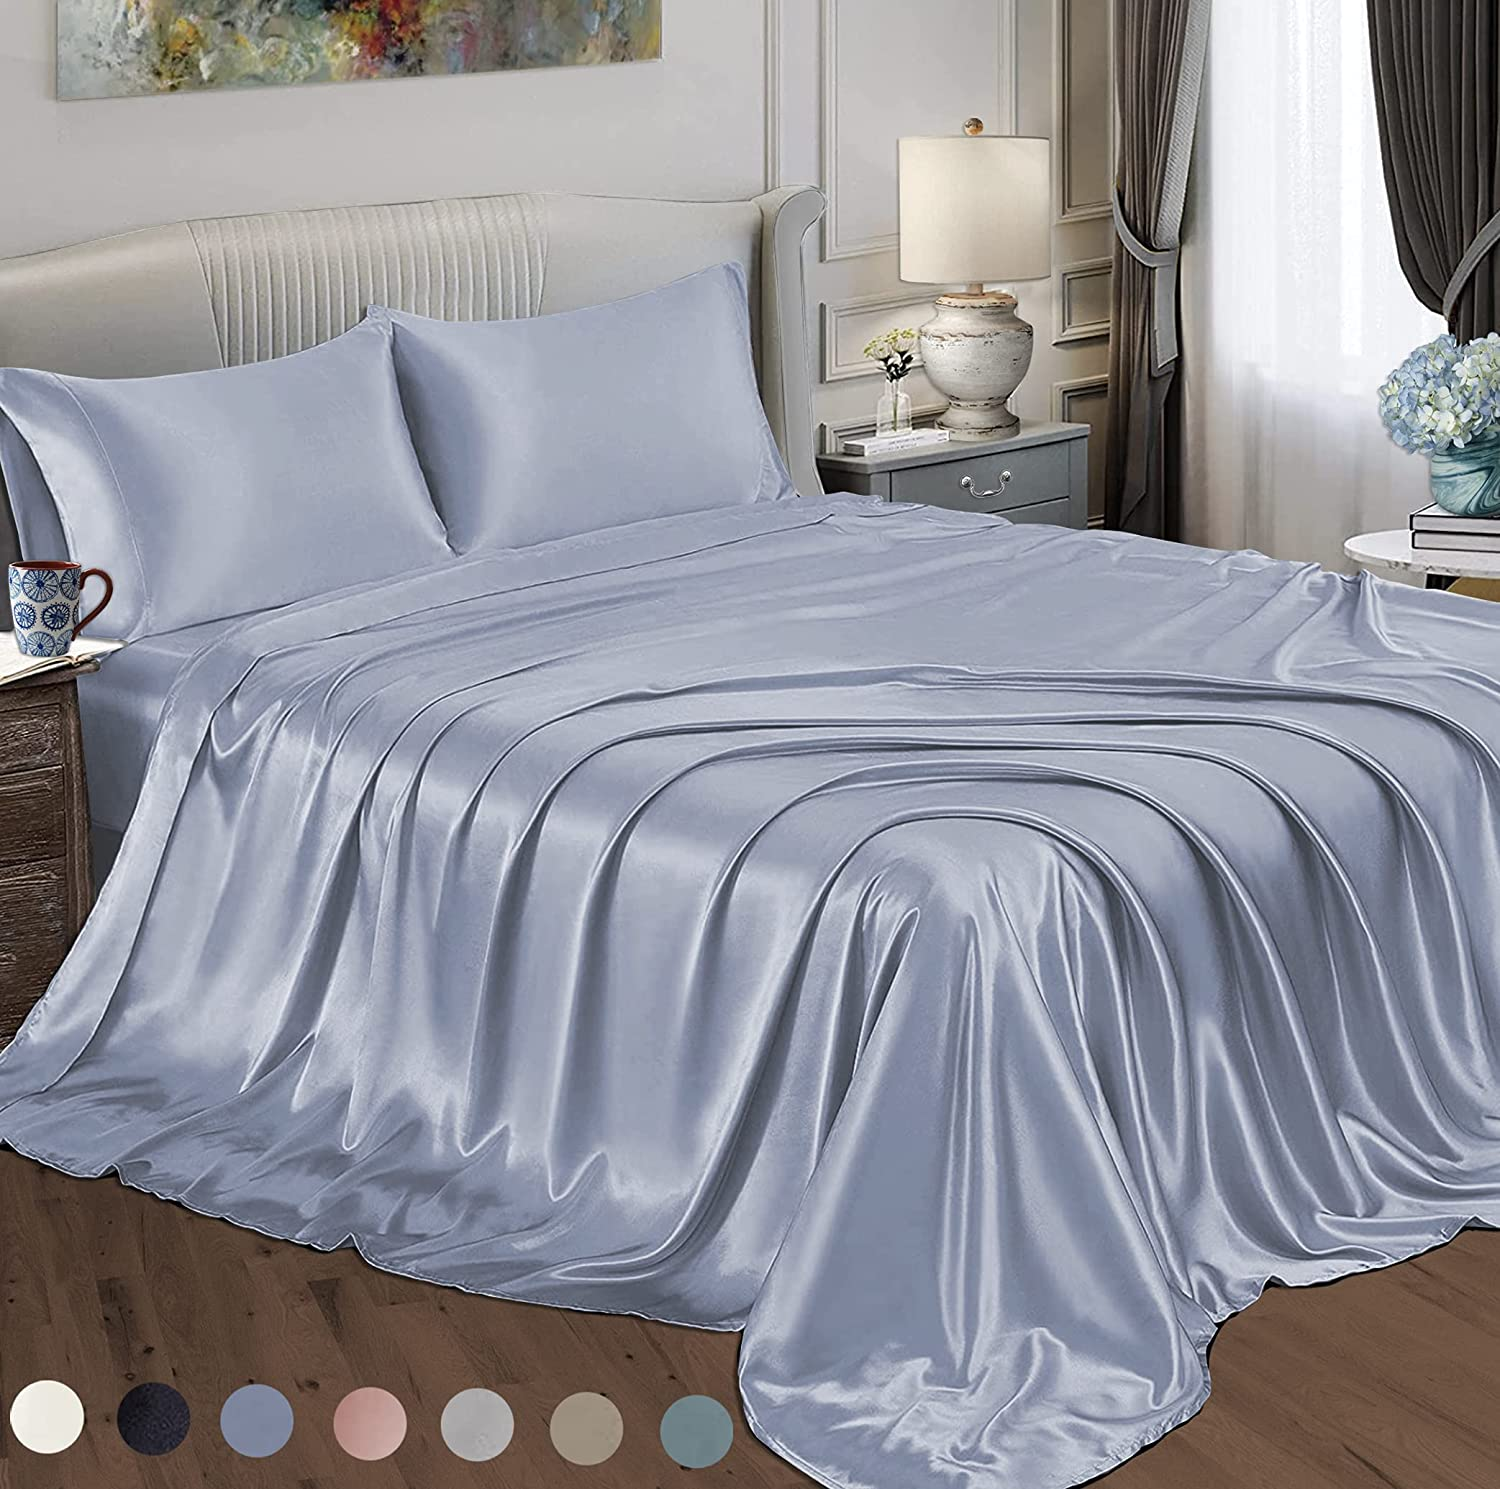 Satin Radiance Limited Special Price 202 3SS Max 72% OFF Luxury Sheet Dee Set with Charmeuse